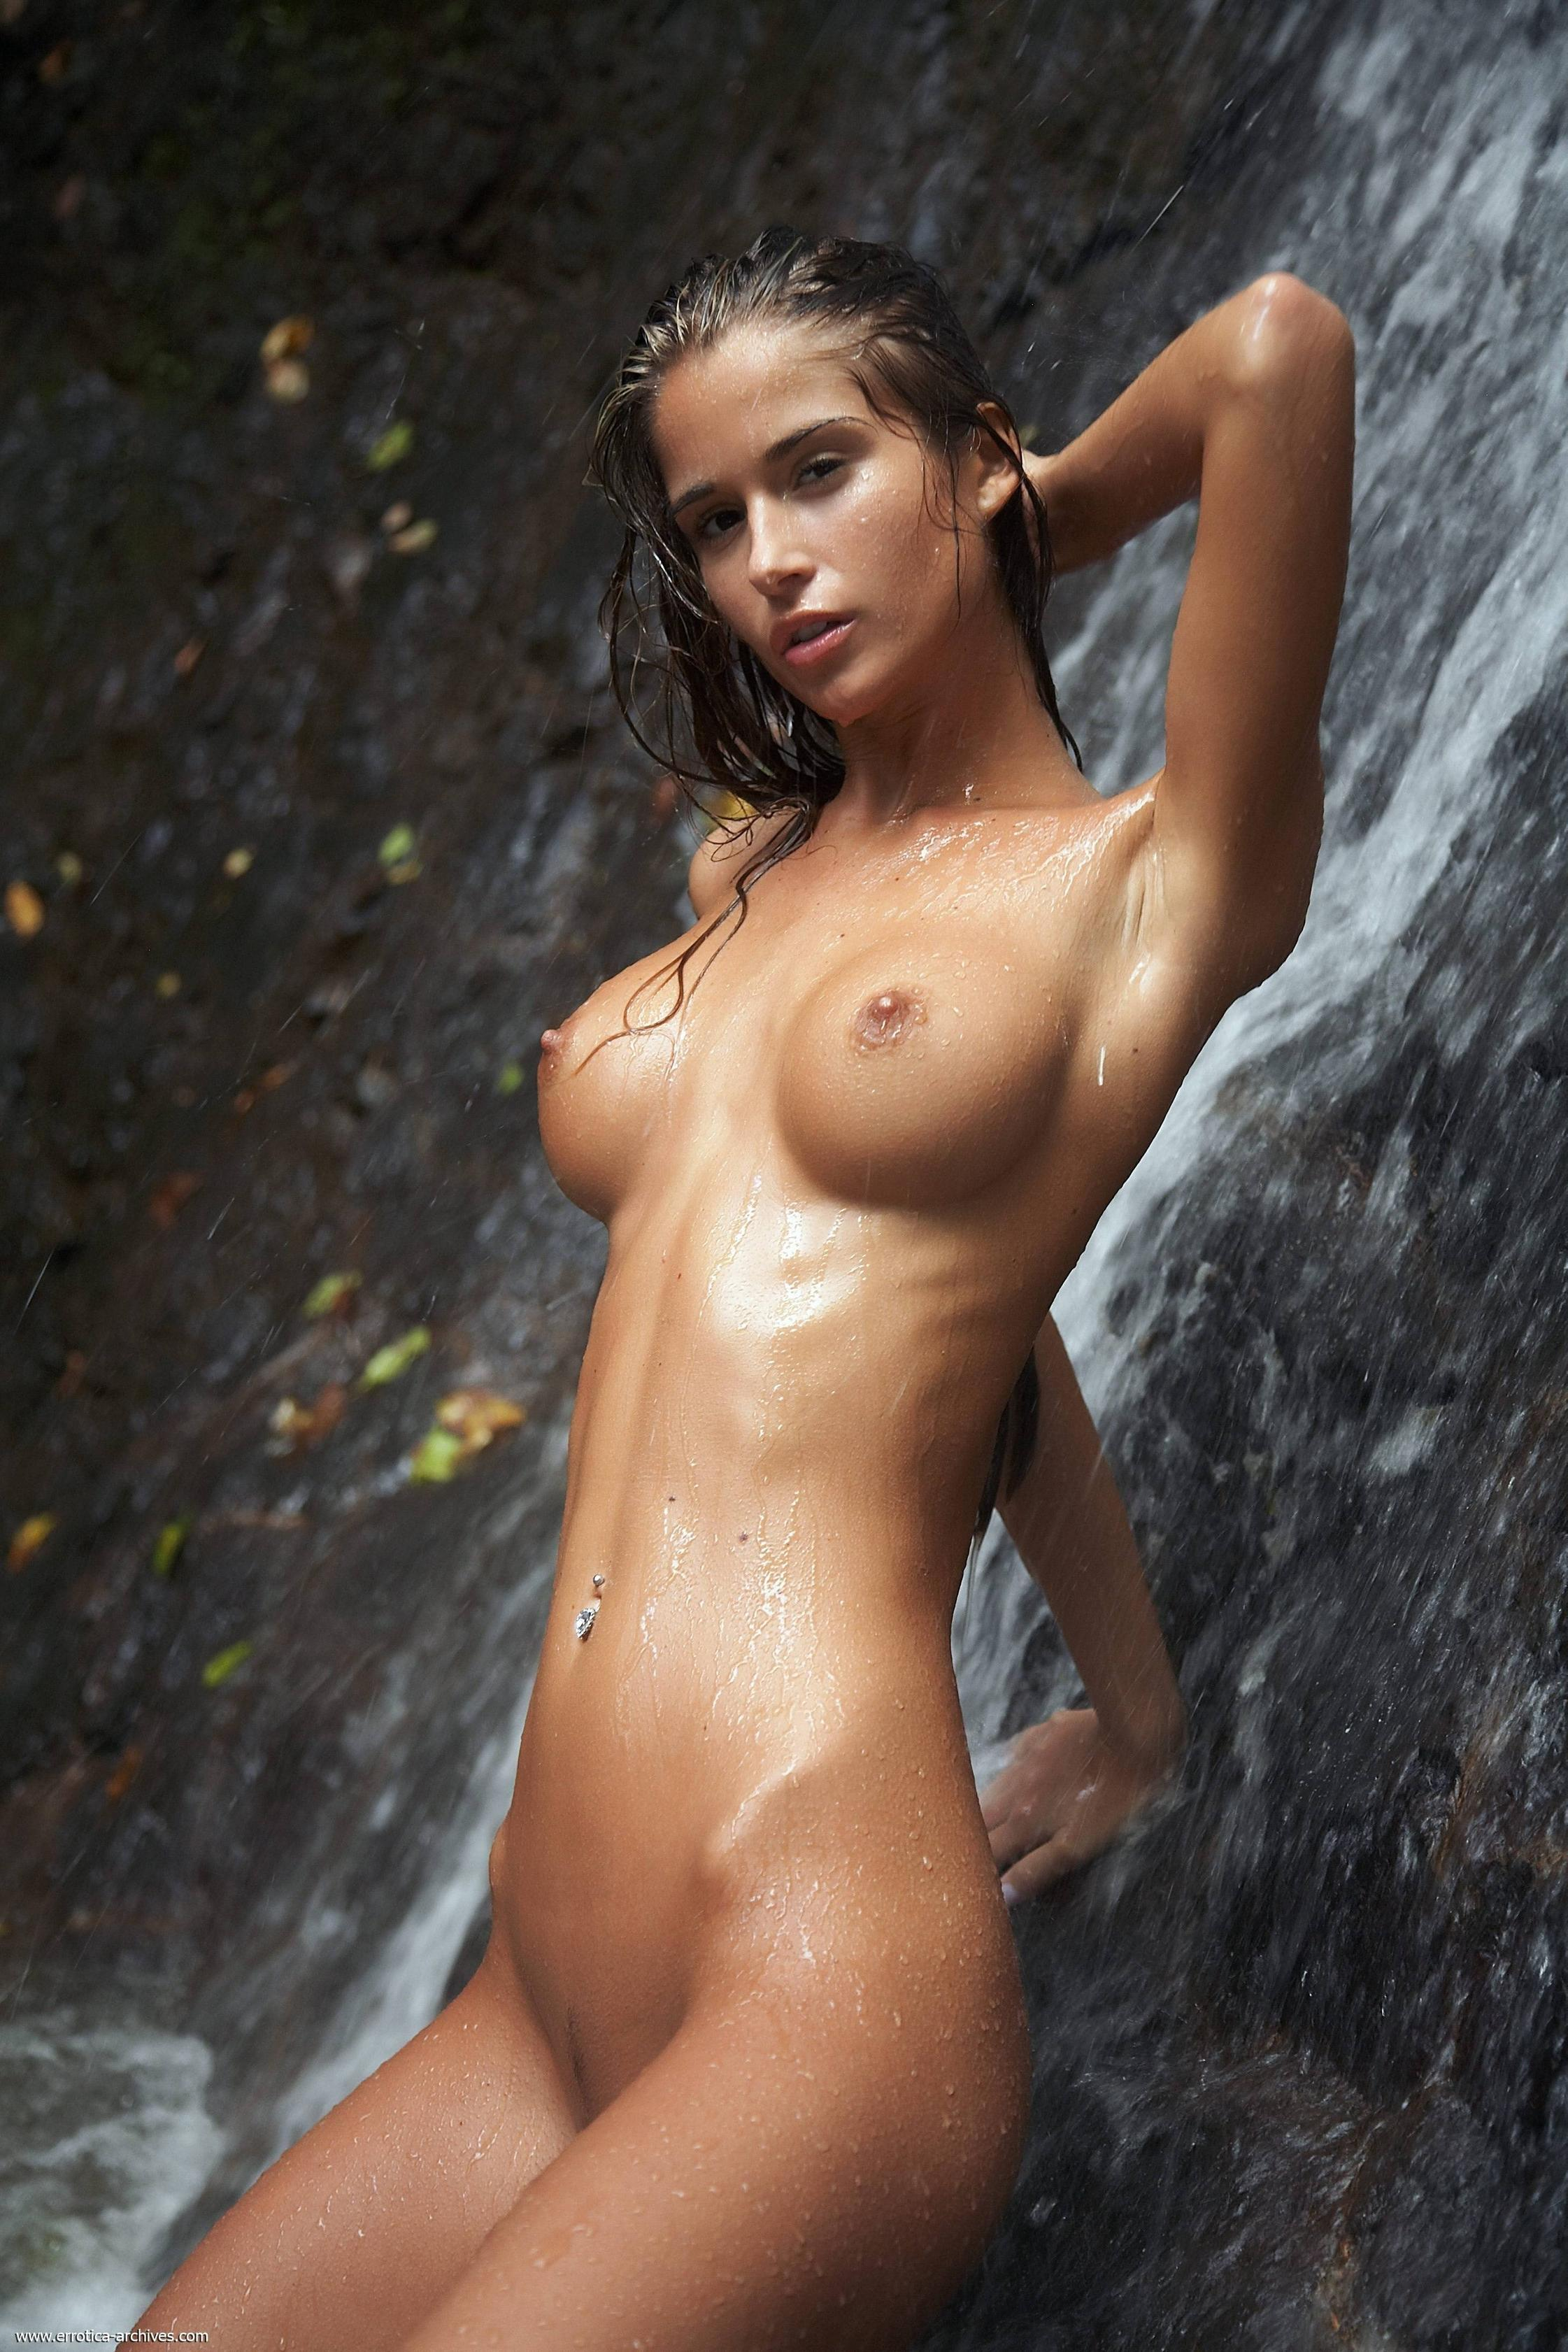 Apologise, Naked girl squirt waterfall